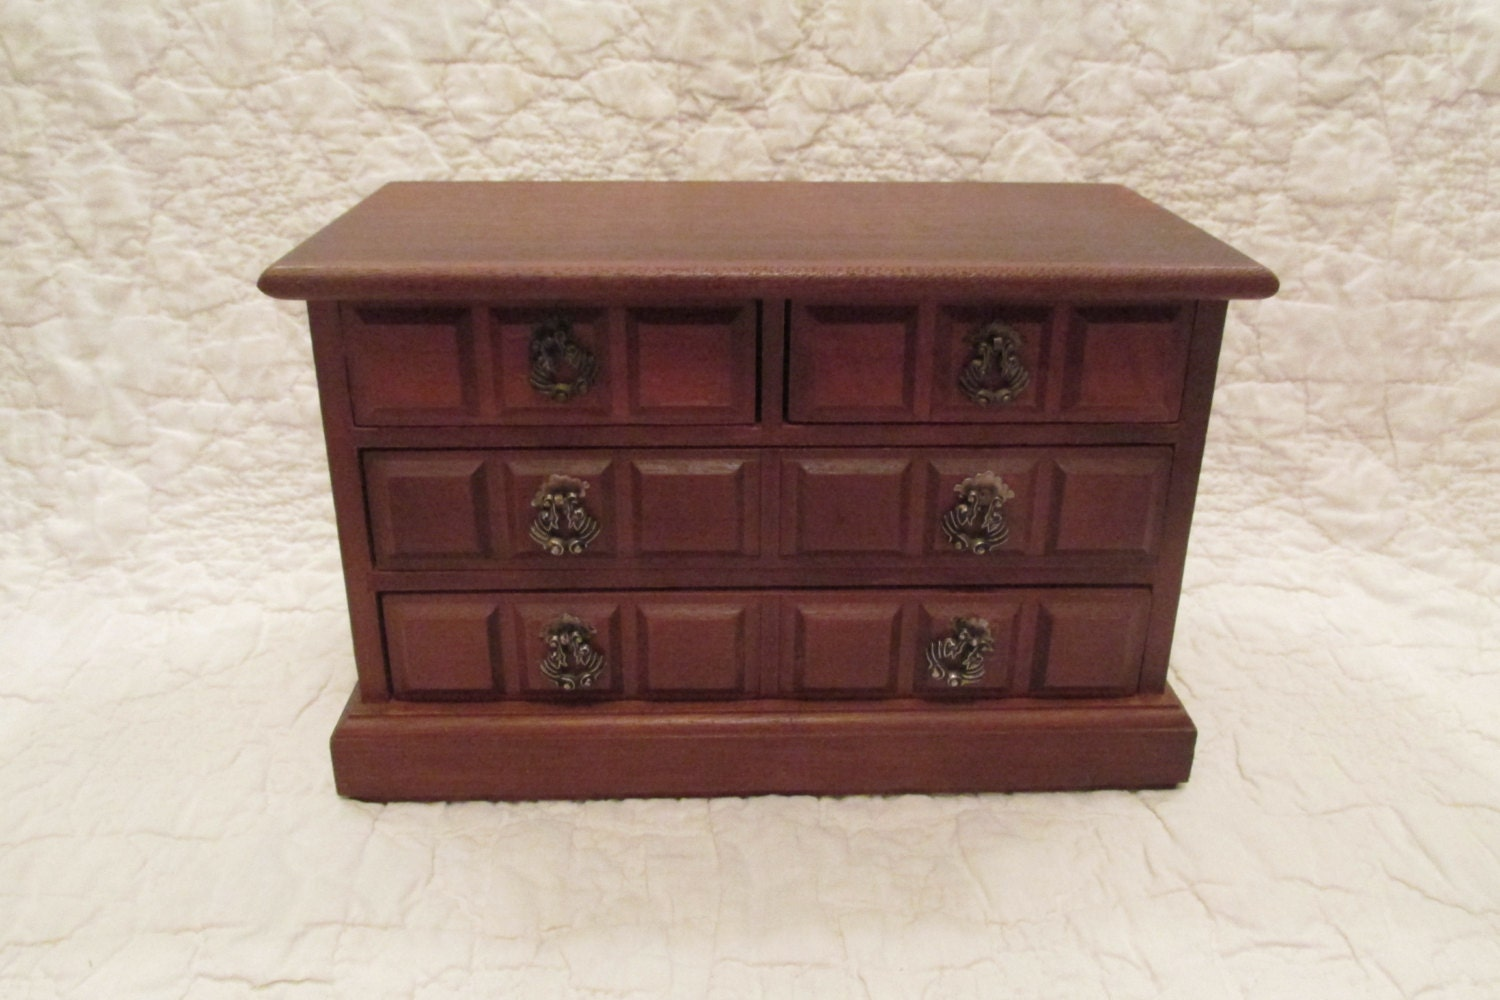 vintage jewelry box wood chest of drawers style retro. Black Bedroom Furniture Sets. Home Design Ideas